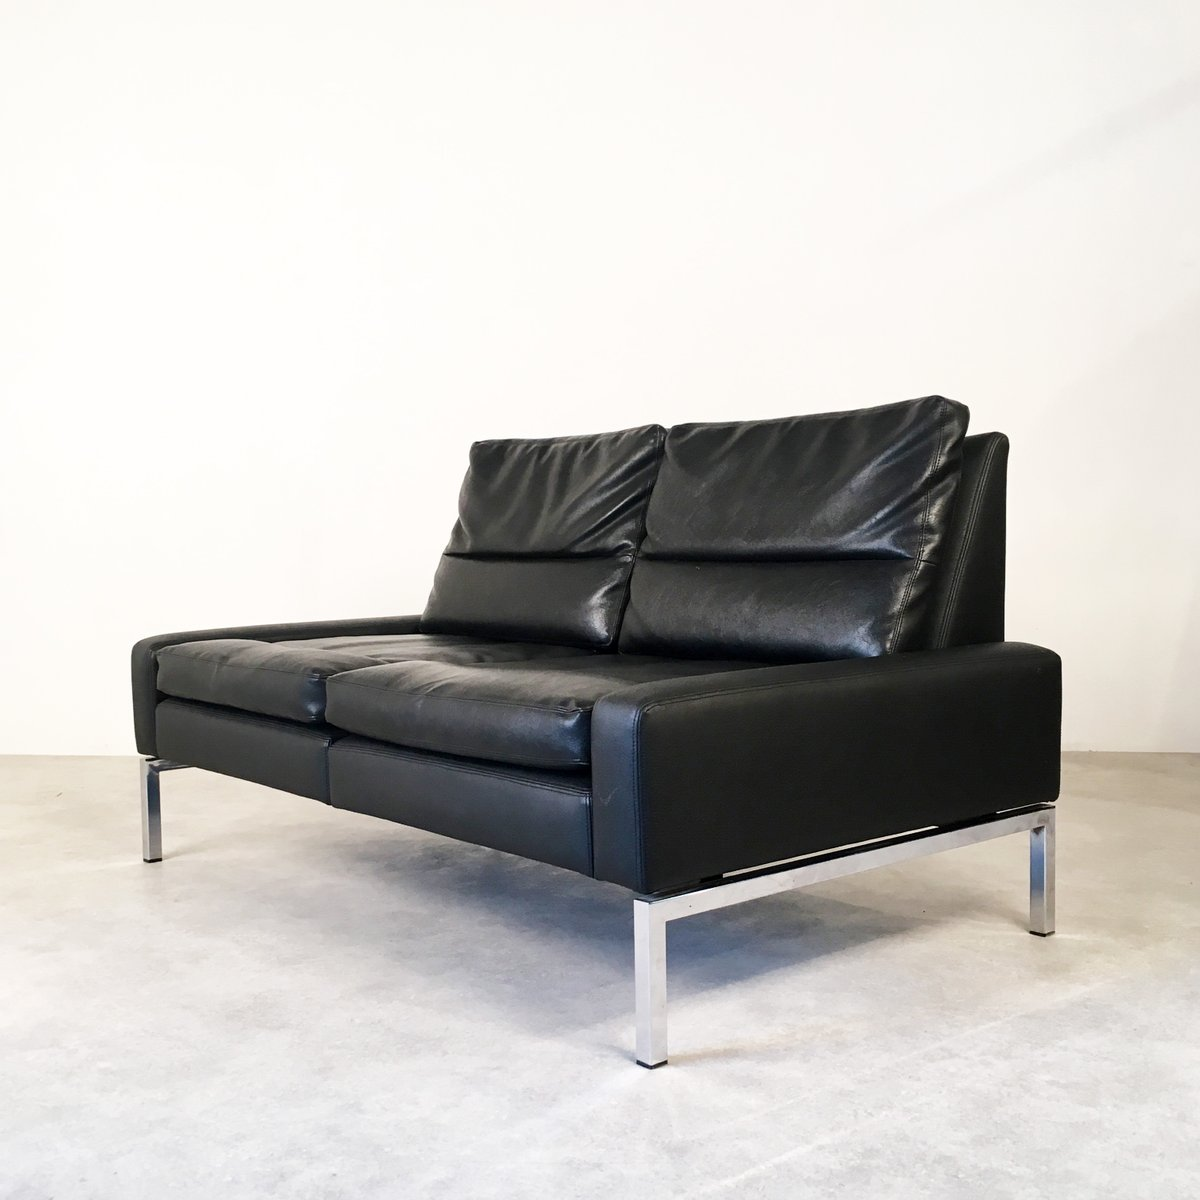 Sofa by hans peter piel for wilkhahn for sale at pamono for Sofa rinconera piel